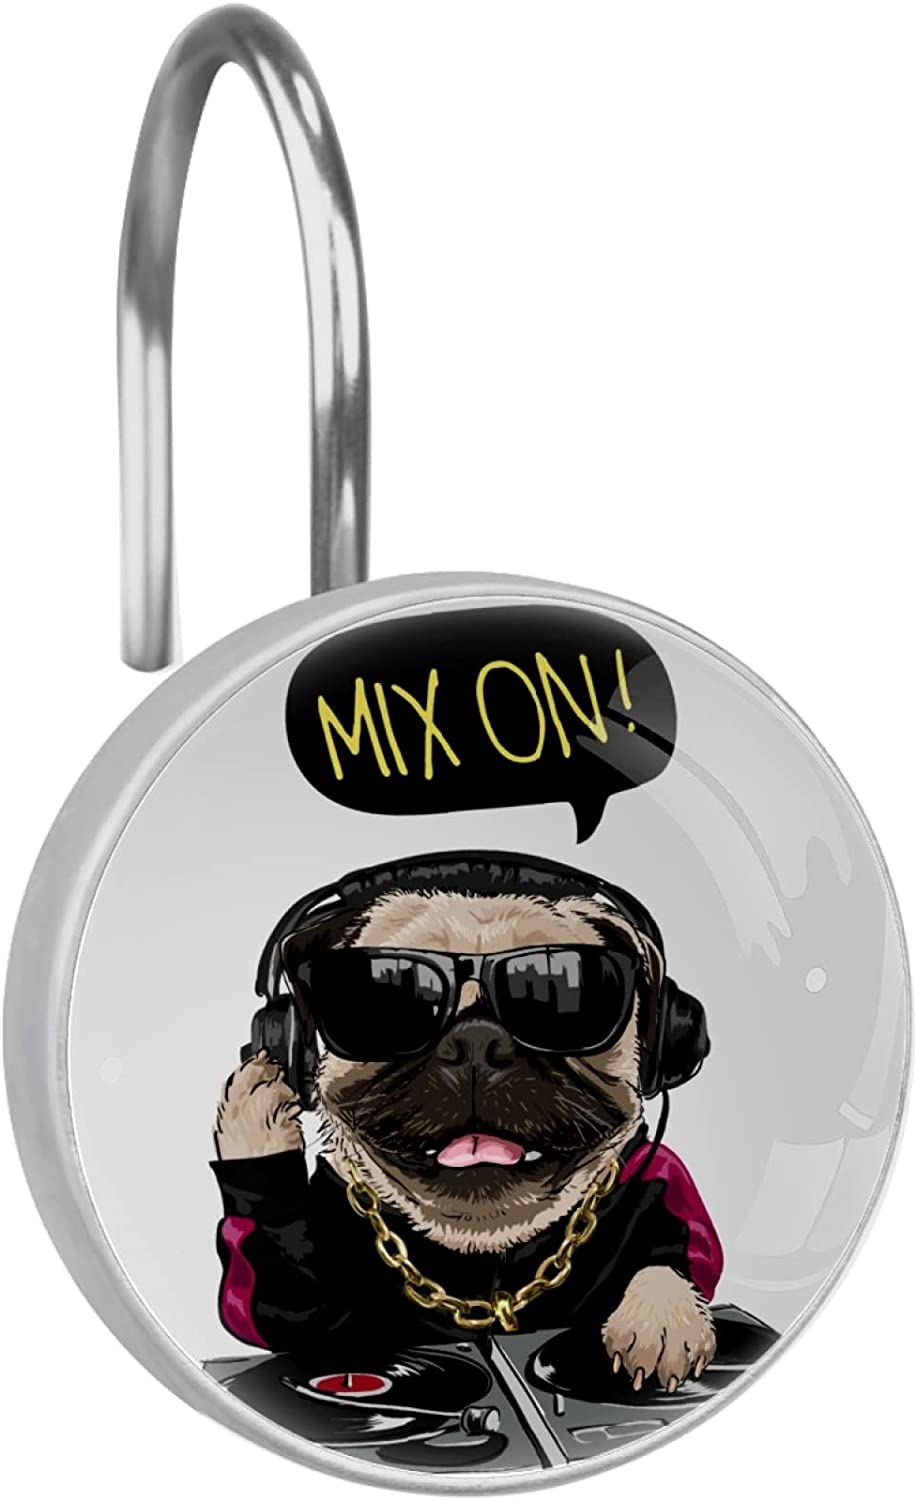 Cartoon Pug Dog in Sunglasses and Piece Clearance SALE Limited time shopping Illustration12 Headphone